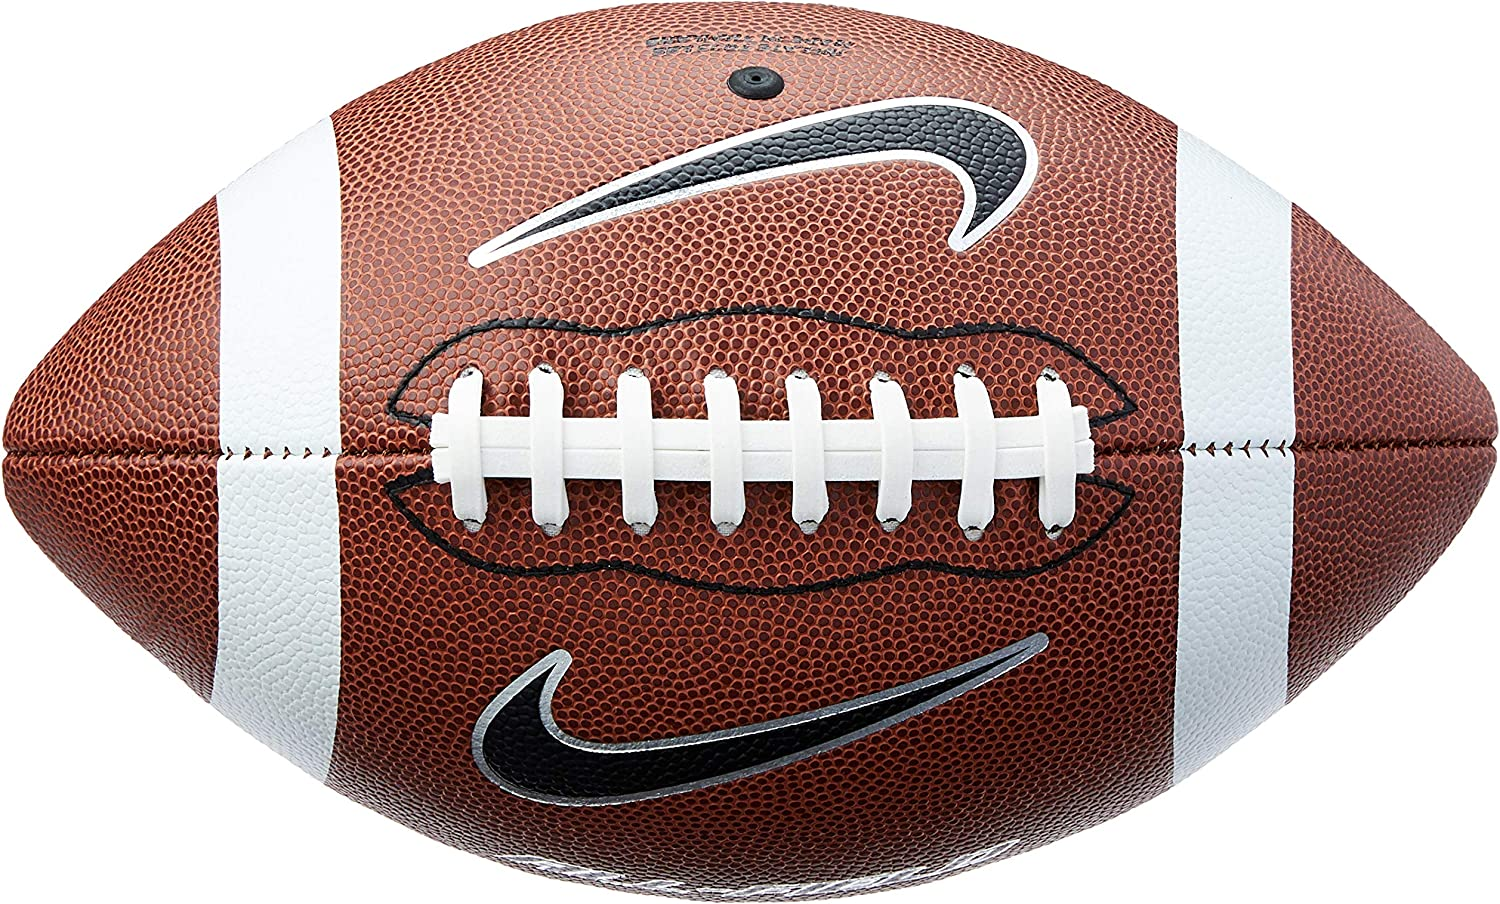 riqueza Crítica Susurro  Amazon.com : Nike All-Field 3.0 Official Football : Sports & Outdoors